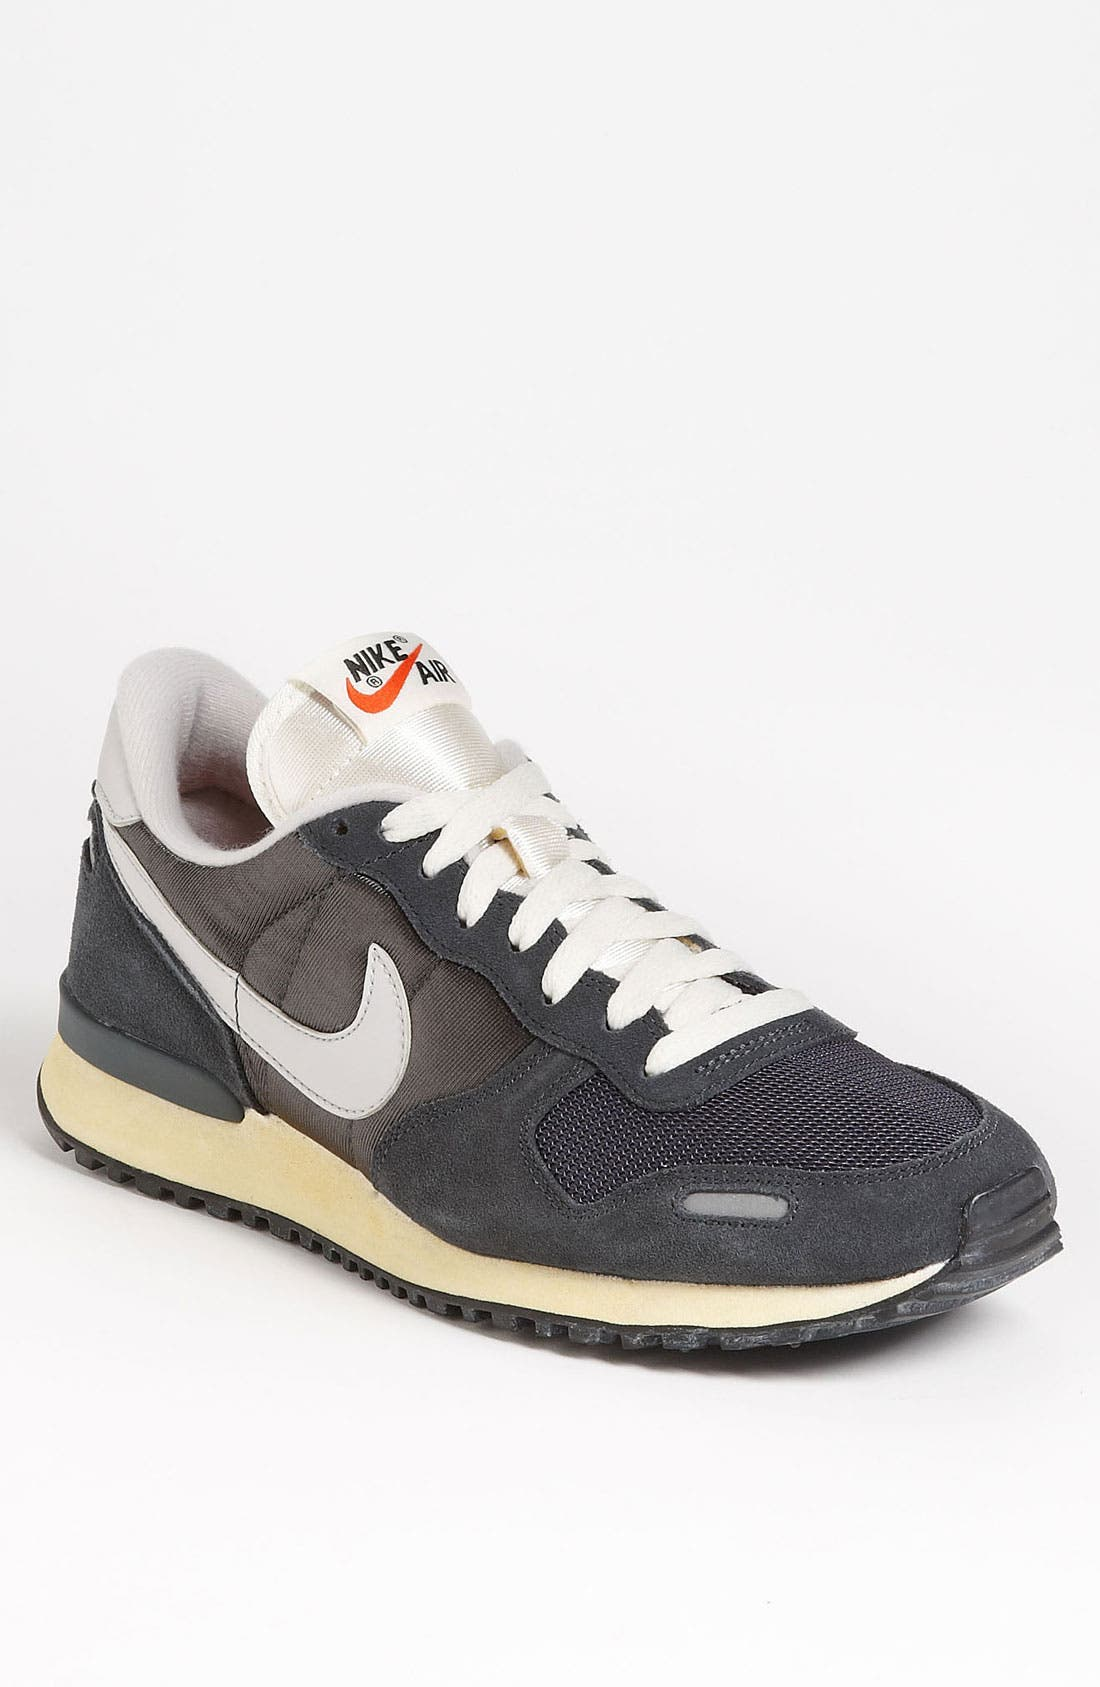 Alternate Image 1 Selected - Nike 'Air Vortex - Vintage' Sneaker (Men)